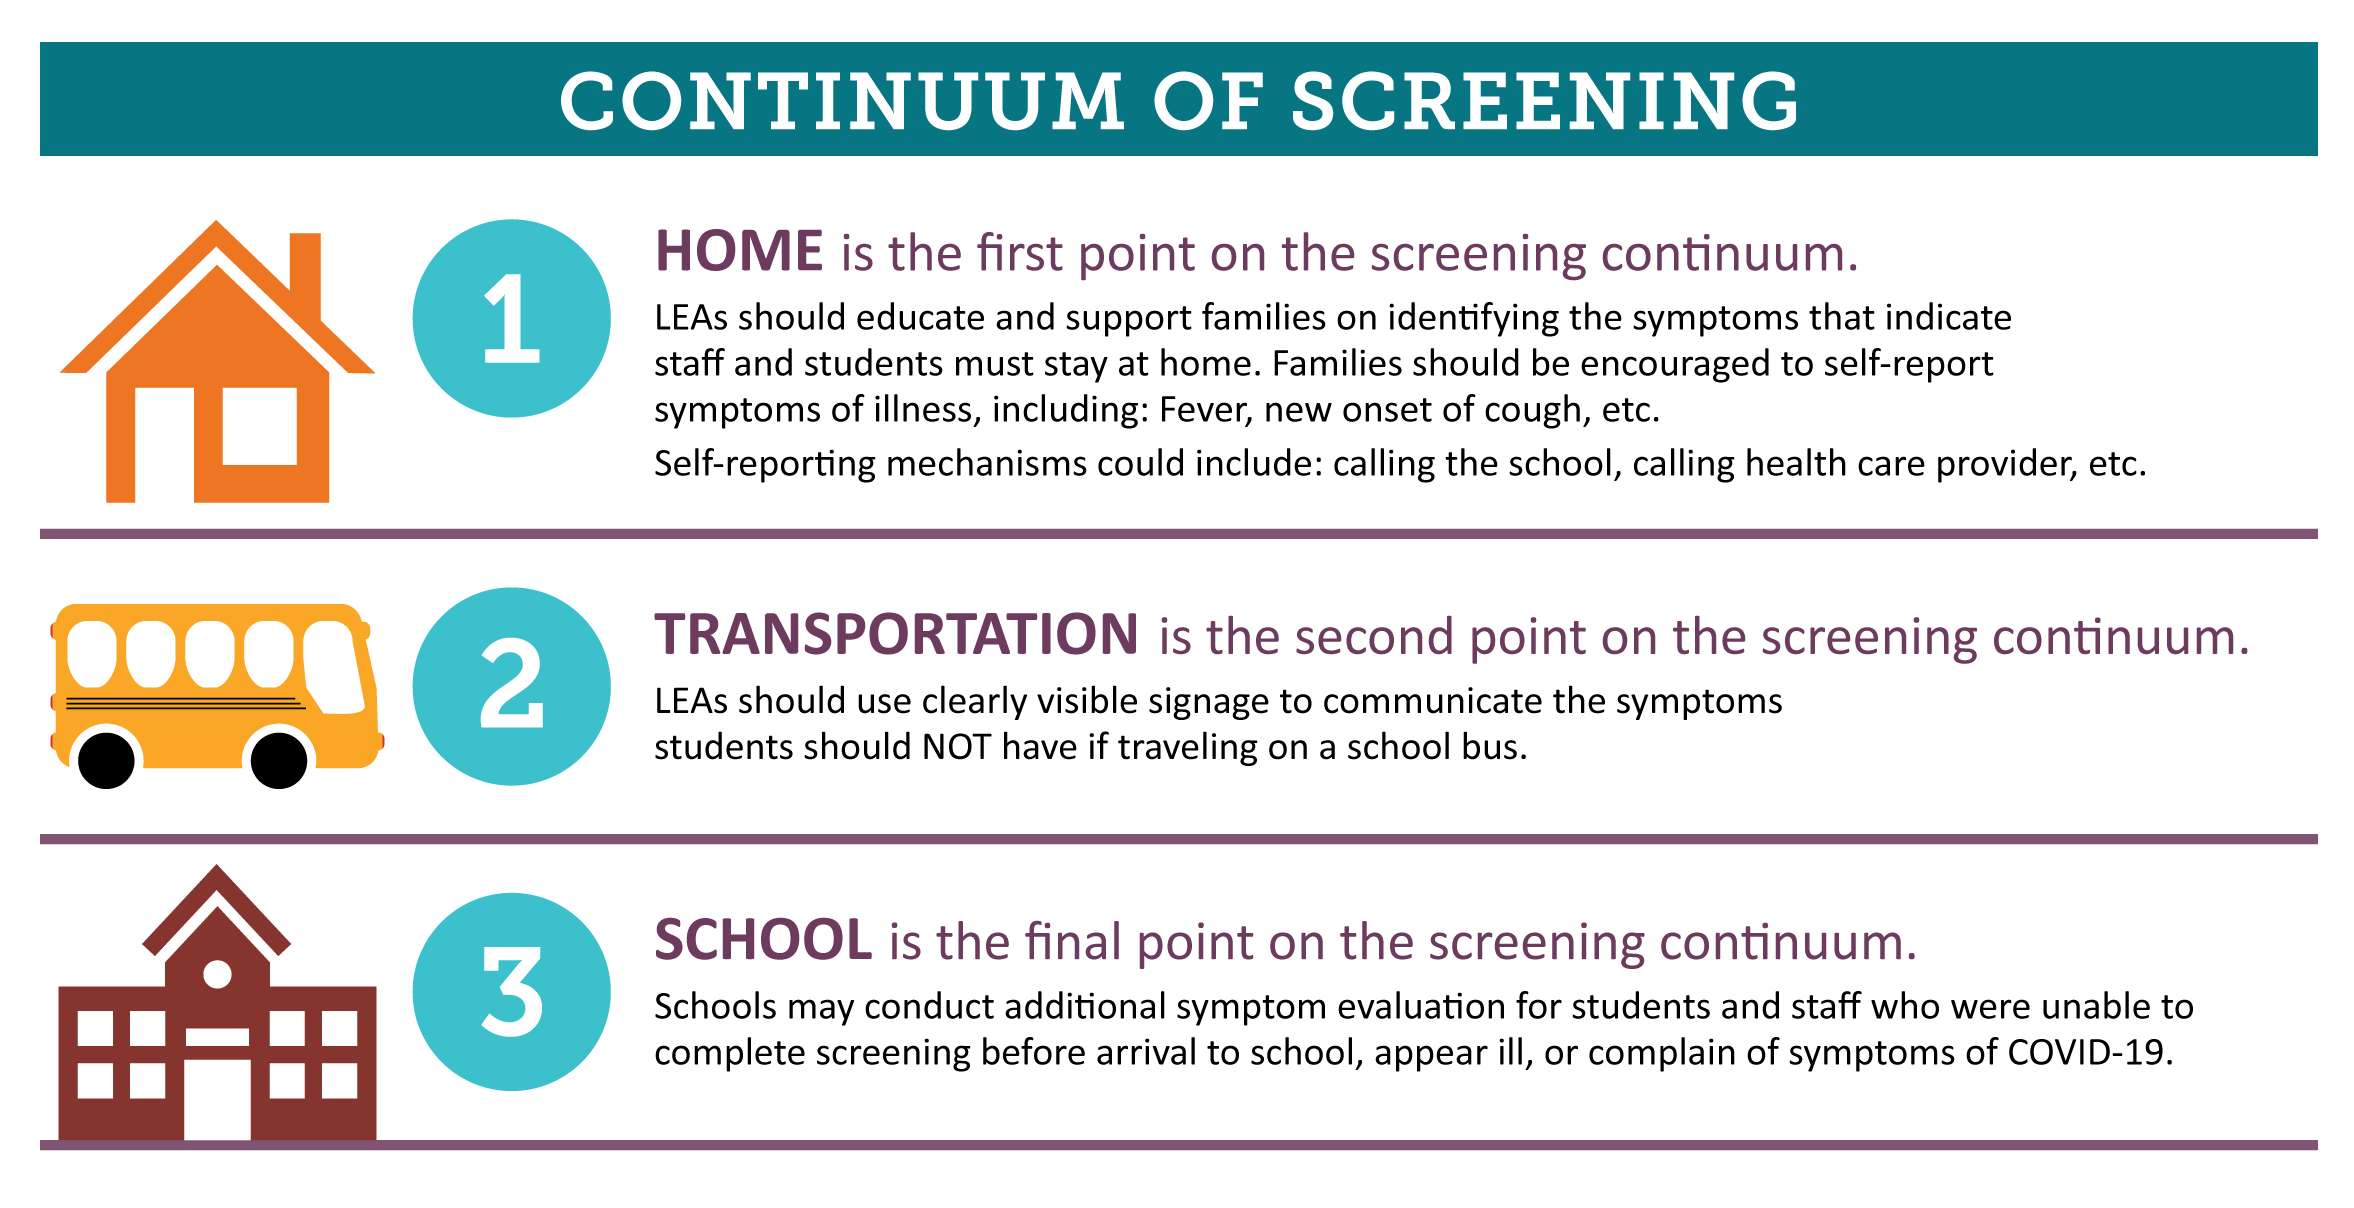 HOME is the first point on the screening continuum. TRANSPORTATION is the second point on the screening continuum. SCHOOL is the final point on the screening continuum. Full alt text available at http://www.cde.state.co.us/planning20-21/image-screeningcontinuum-alt